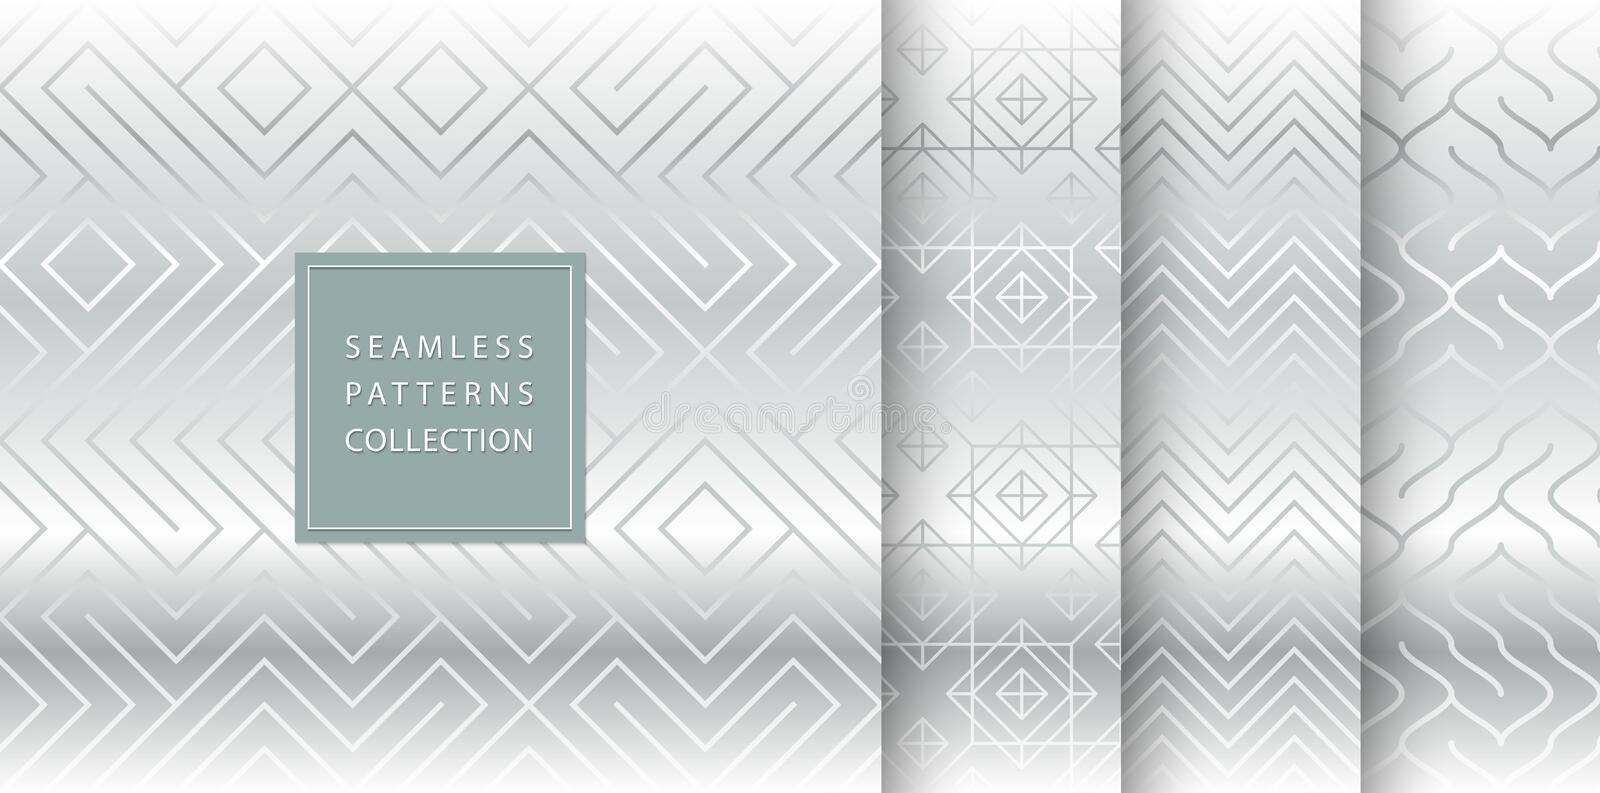 Geometric seamless silver pattern background. Simple vector graphic gray print. Repeating line abstract texture set. Minimalistic vector illustration